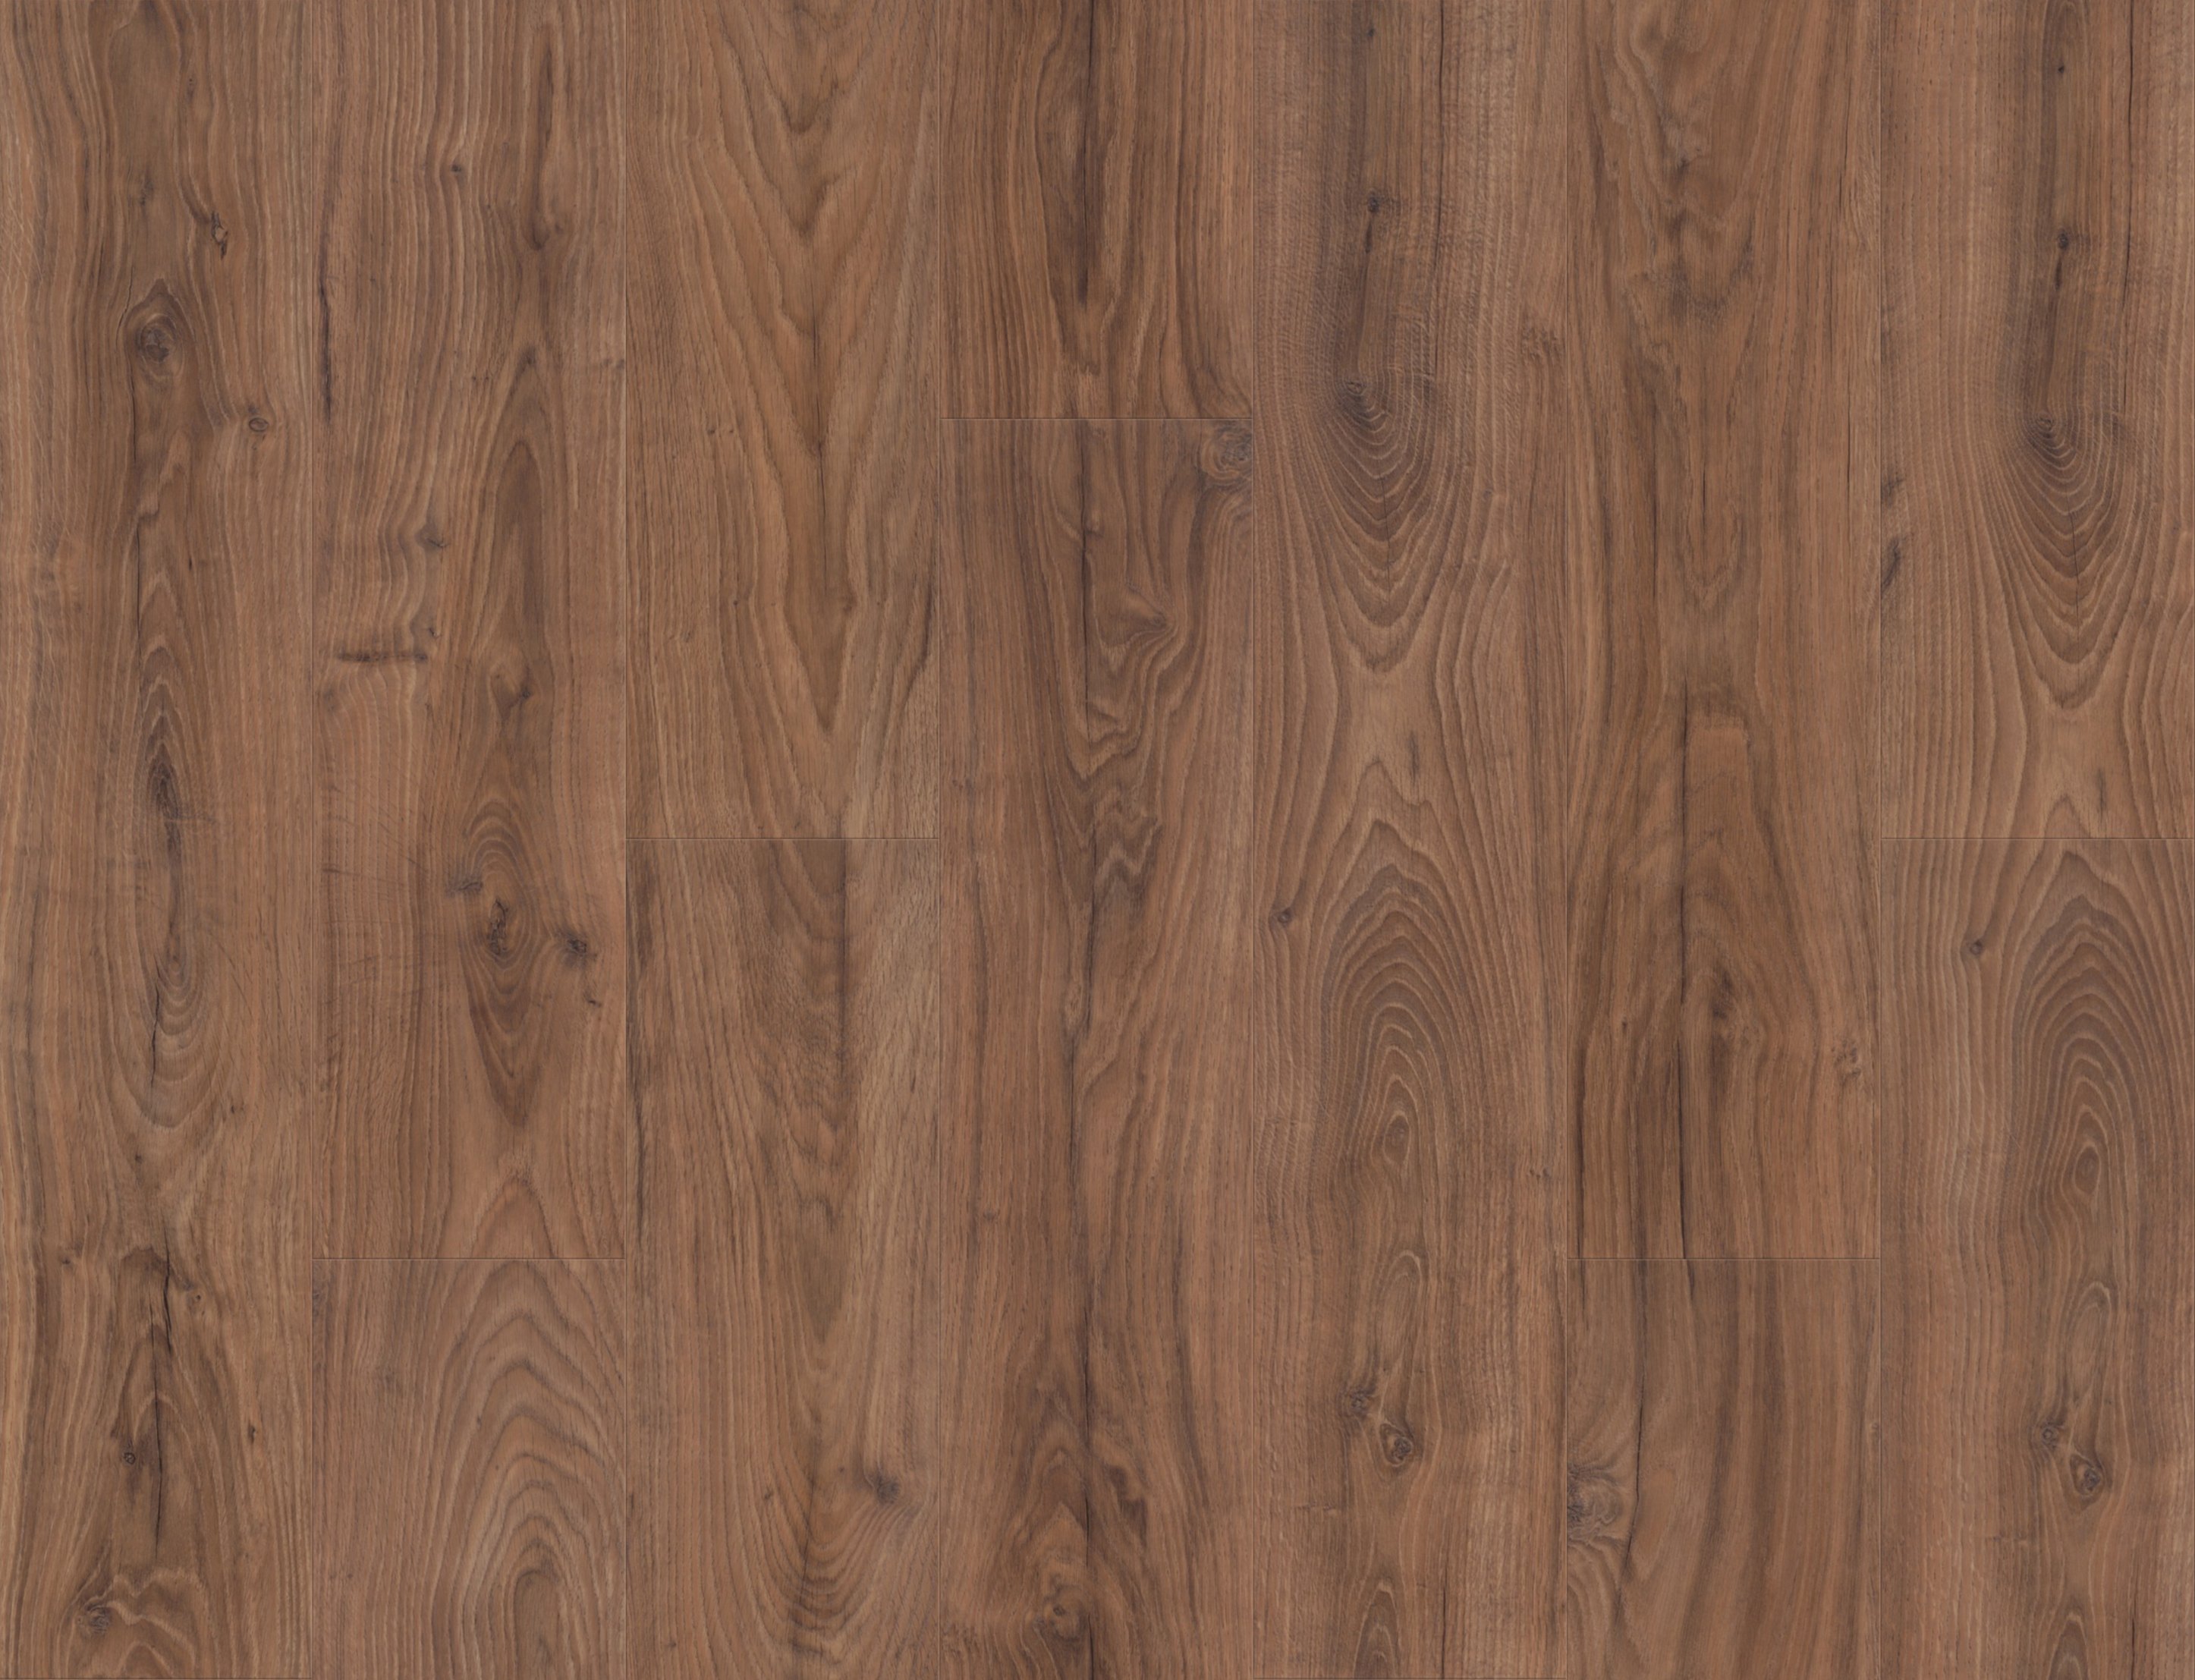 Allura Flex Wood Loose Lay Tiles Forbo Flooring Systems